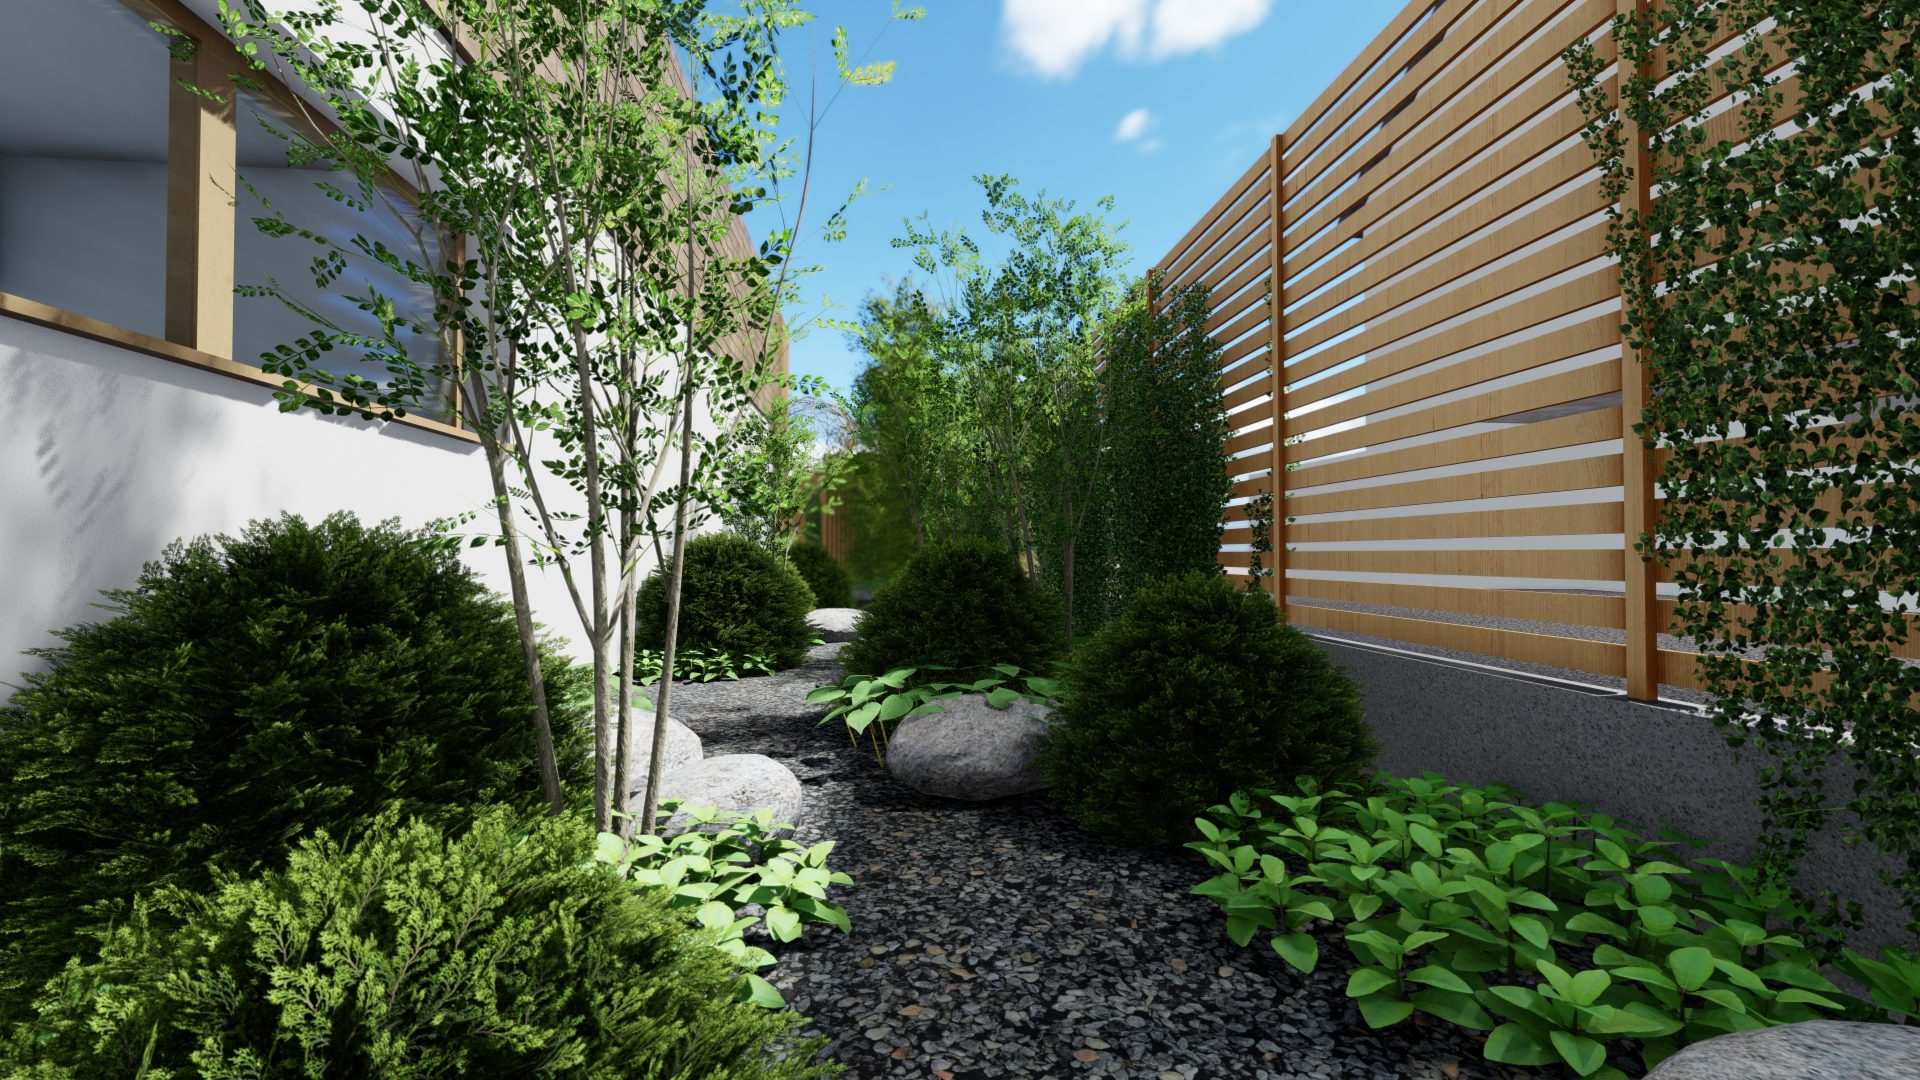 Architecte paysagiste 67-Patio jardin zen